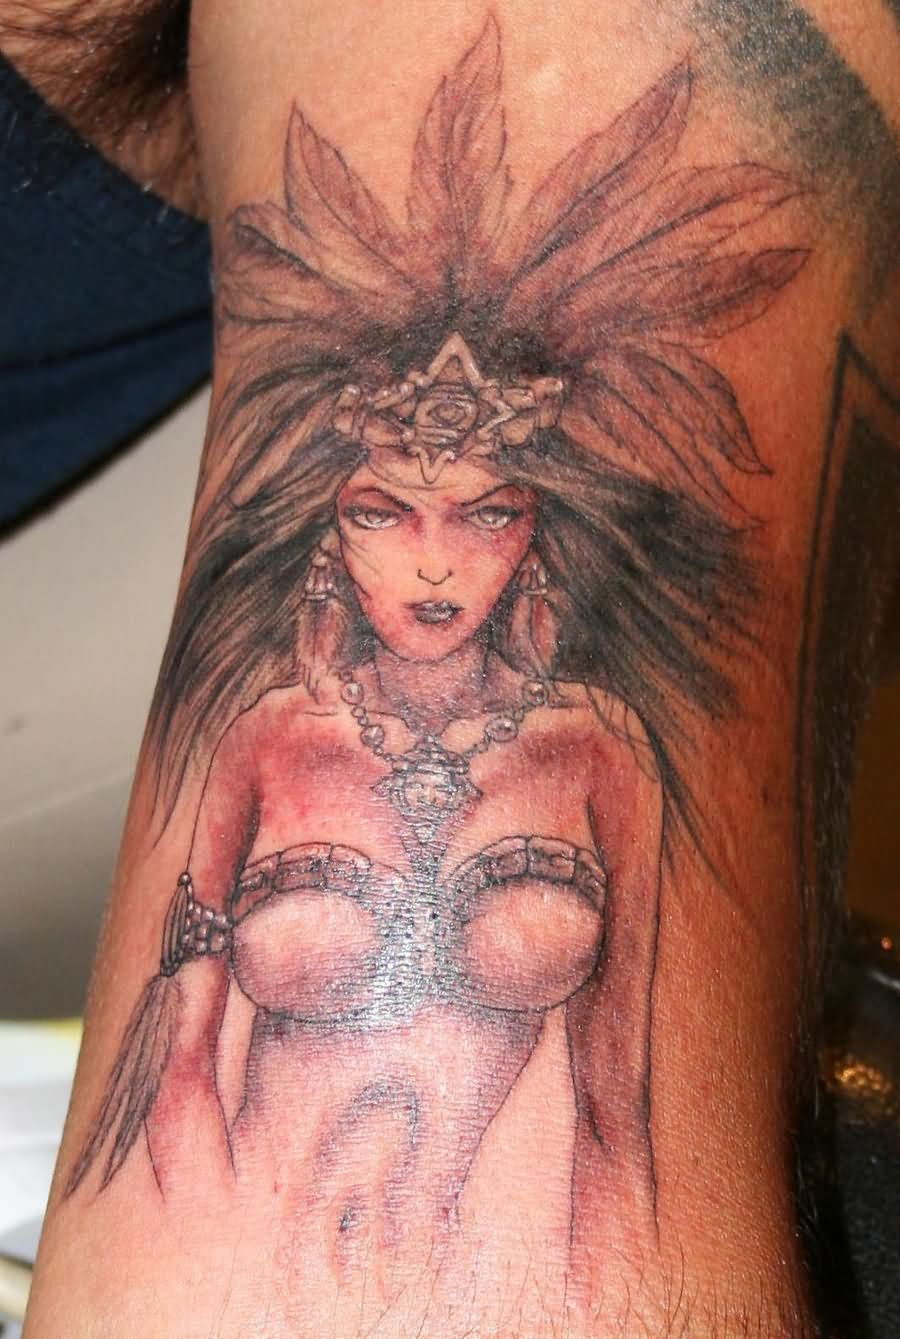 Mayan warrior princess tattoo